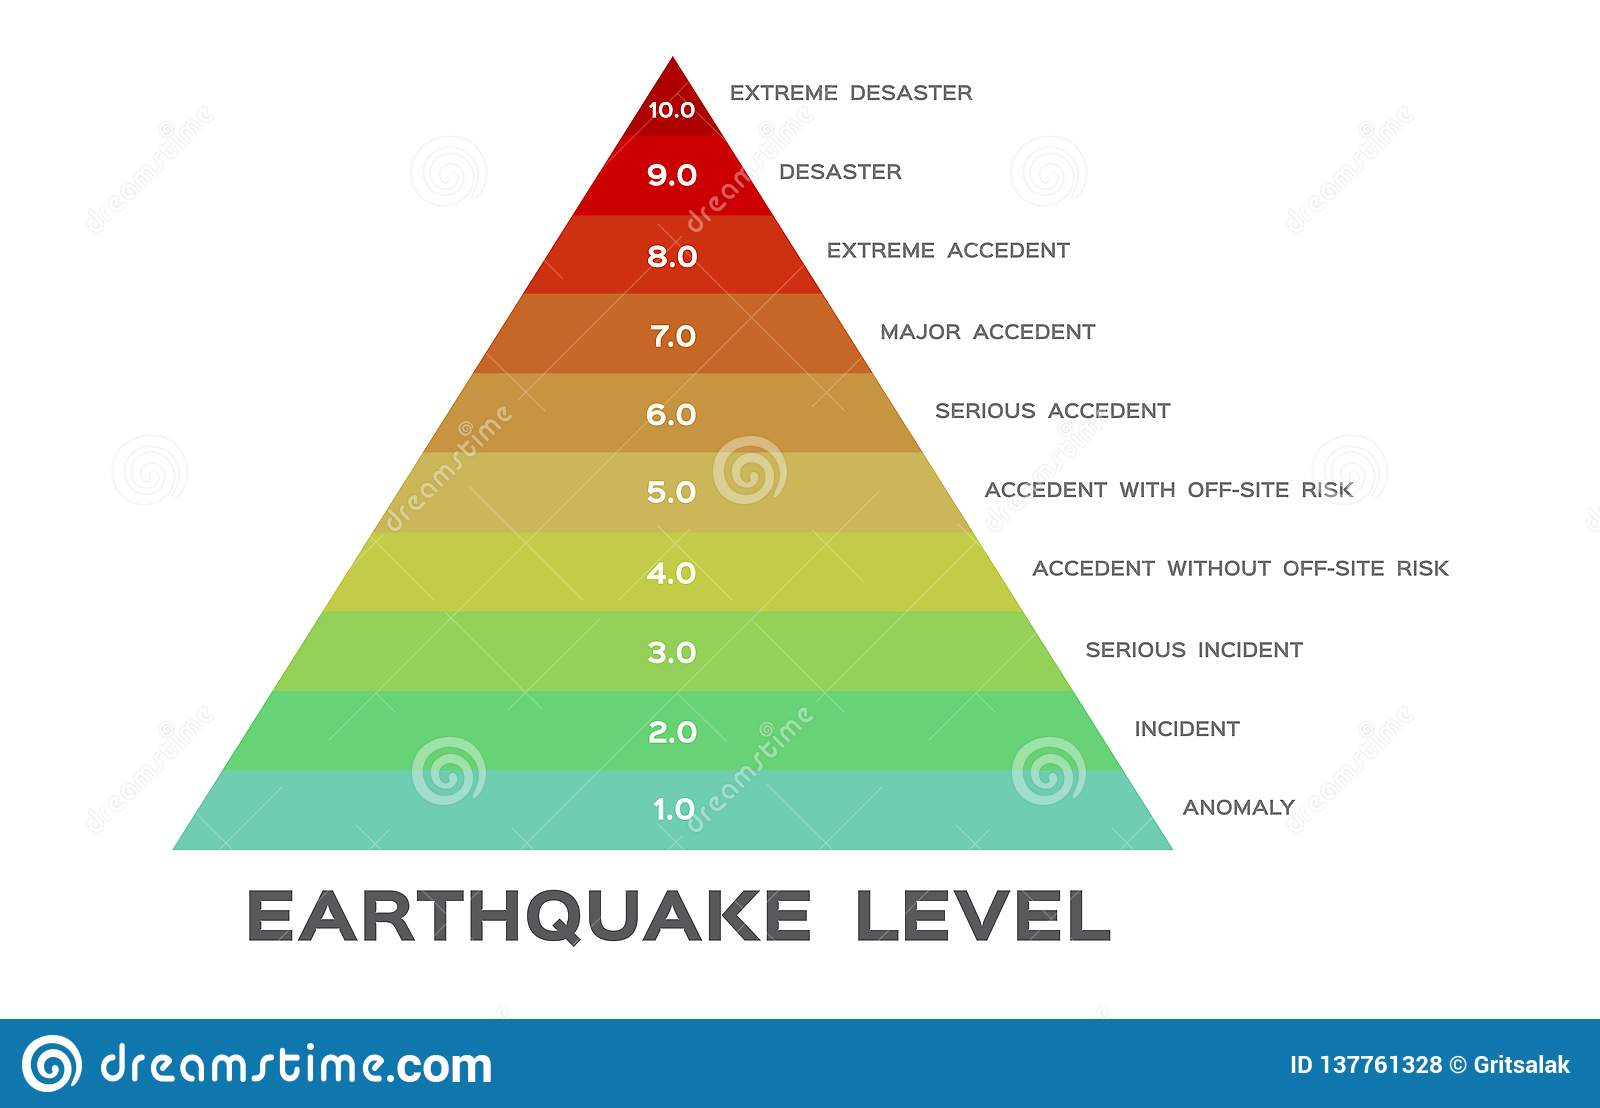 Earthquake Magnitude Levels Scale Meter Vector Richter Stock Vector Illustration Of Graphic Infographic 137761328